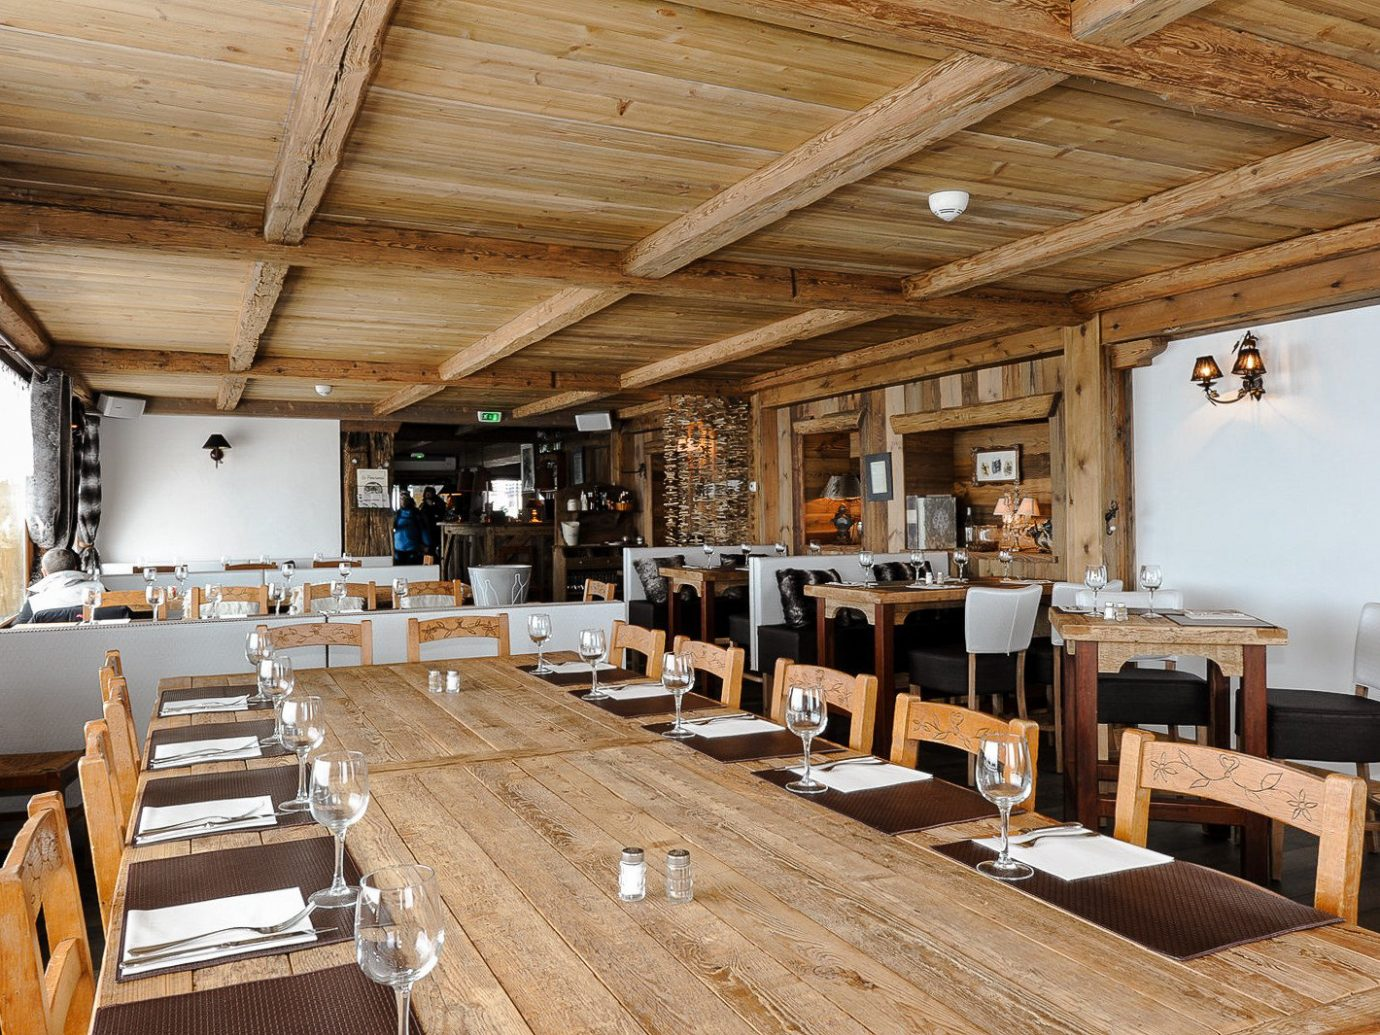 Interior of Le Panoramic, Chamonix, France